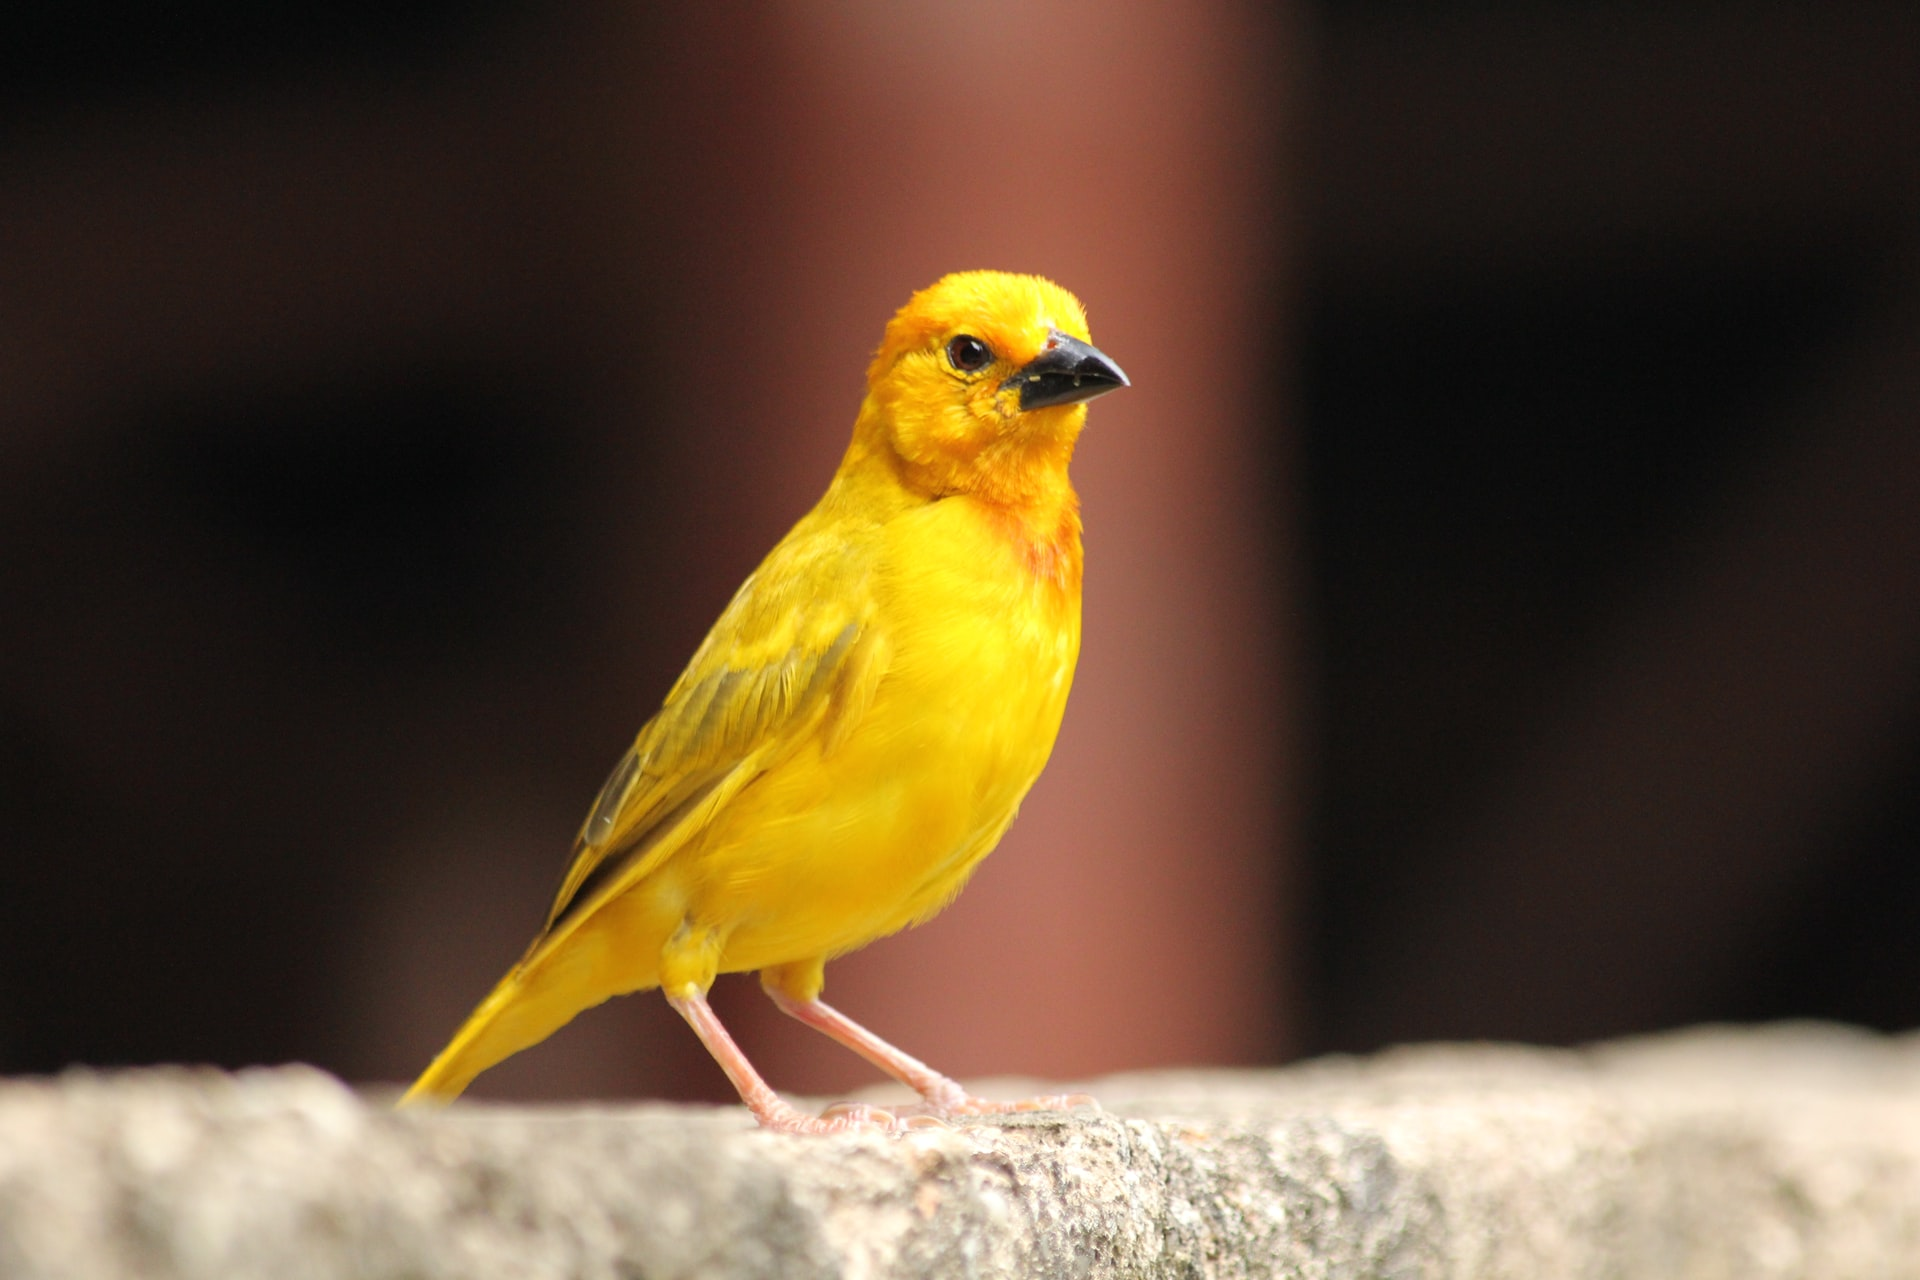 A SICK CANARY SYMPTOMS AND HEALTHCARE